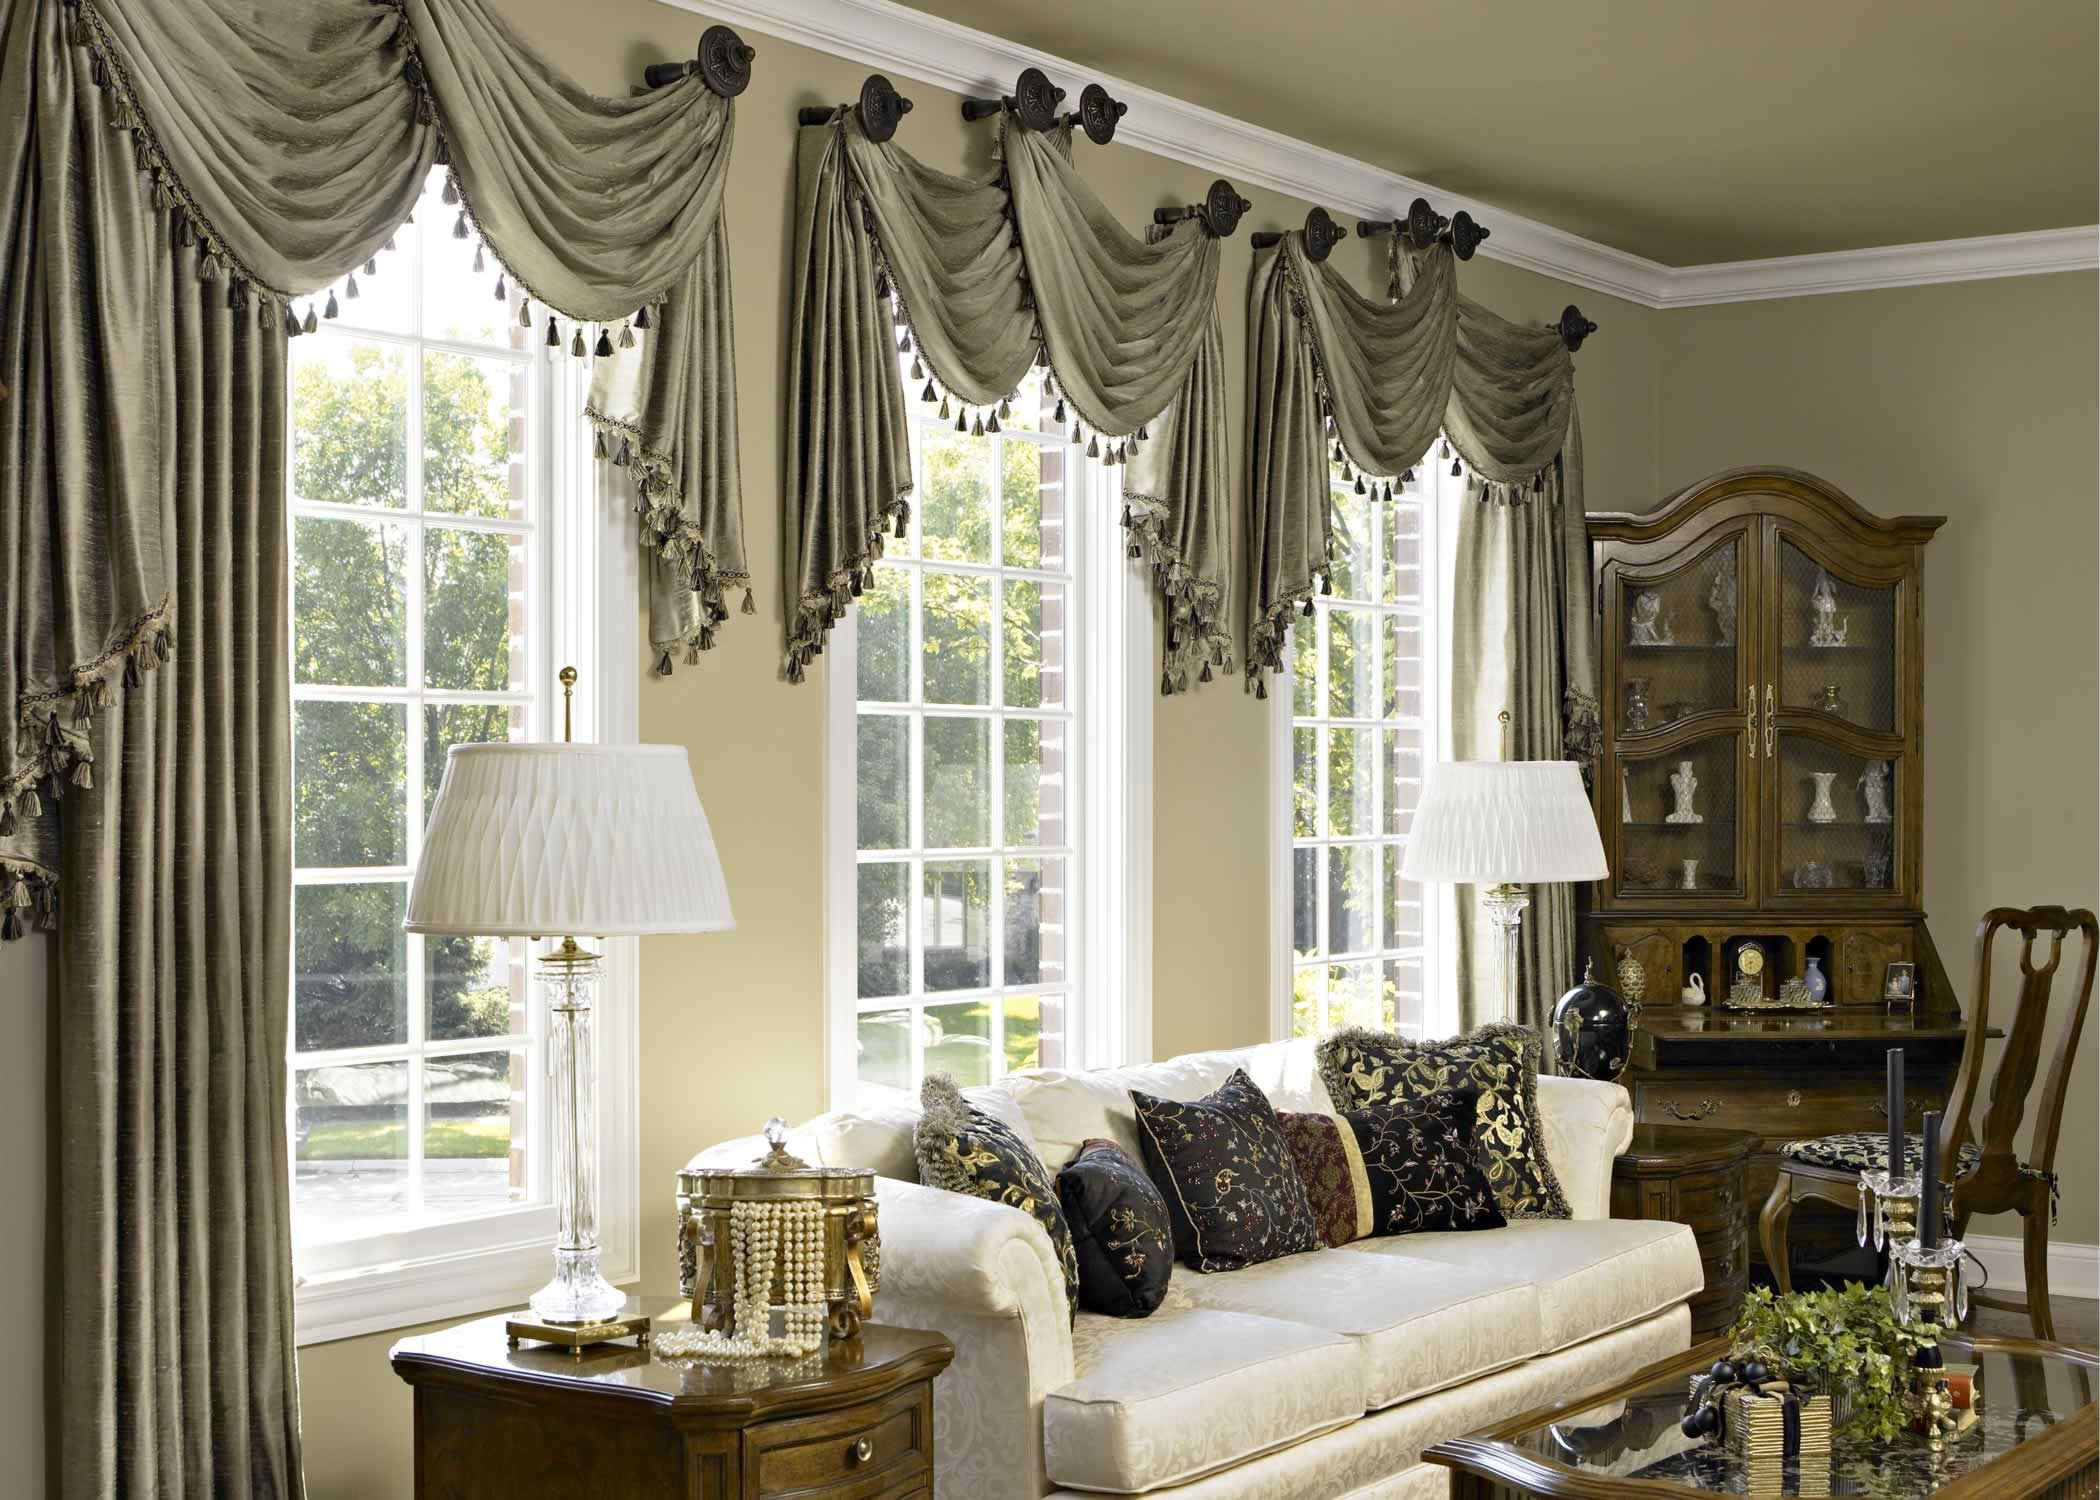 Accesories DecorsGray Fabric Scarf Over Valance As Window Treatment For Spring Living Room Ideas Added White Couch And Corner Cabinetry